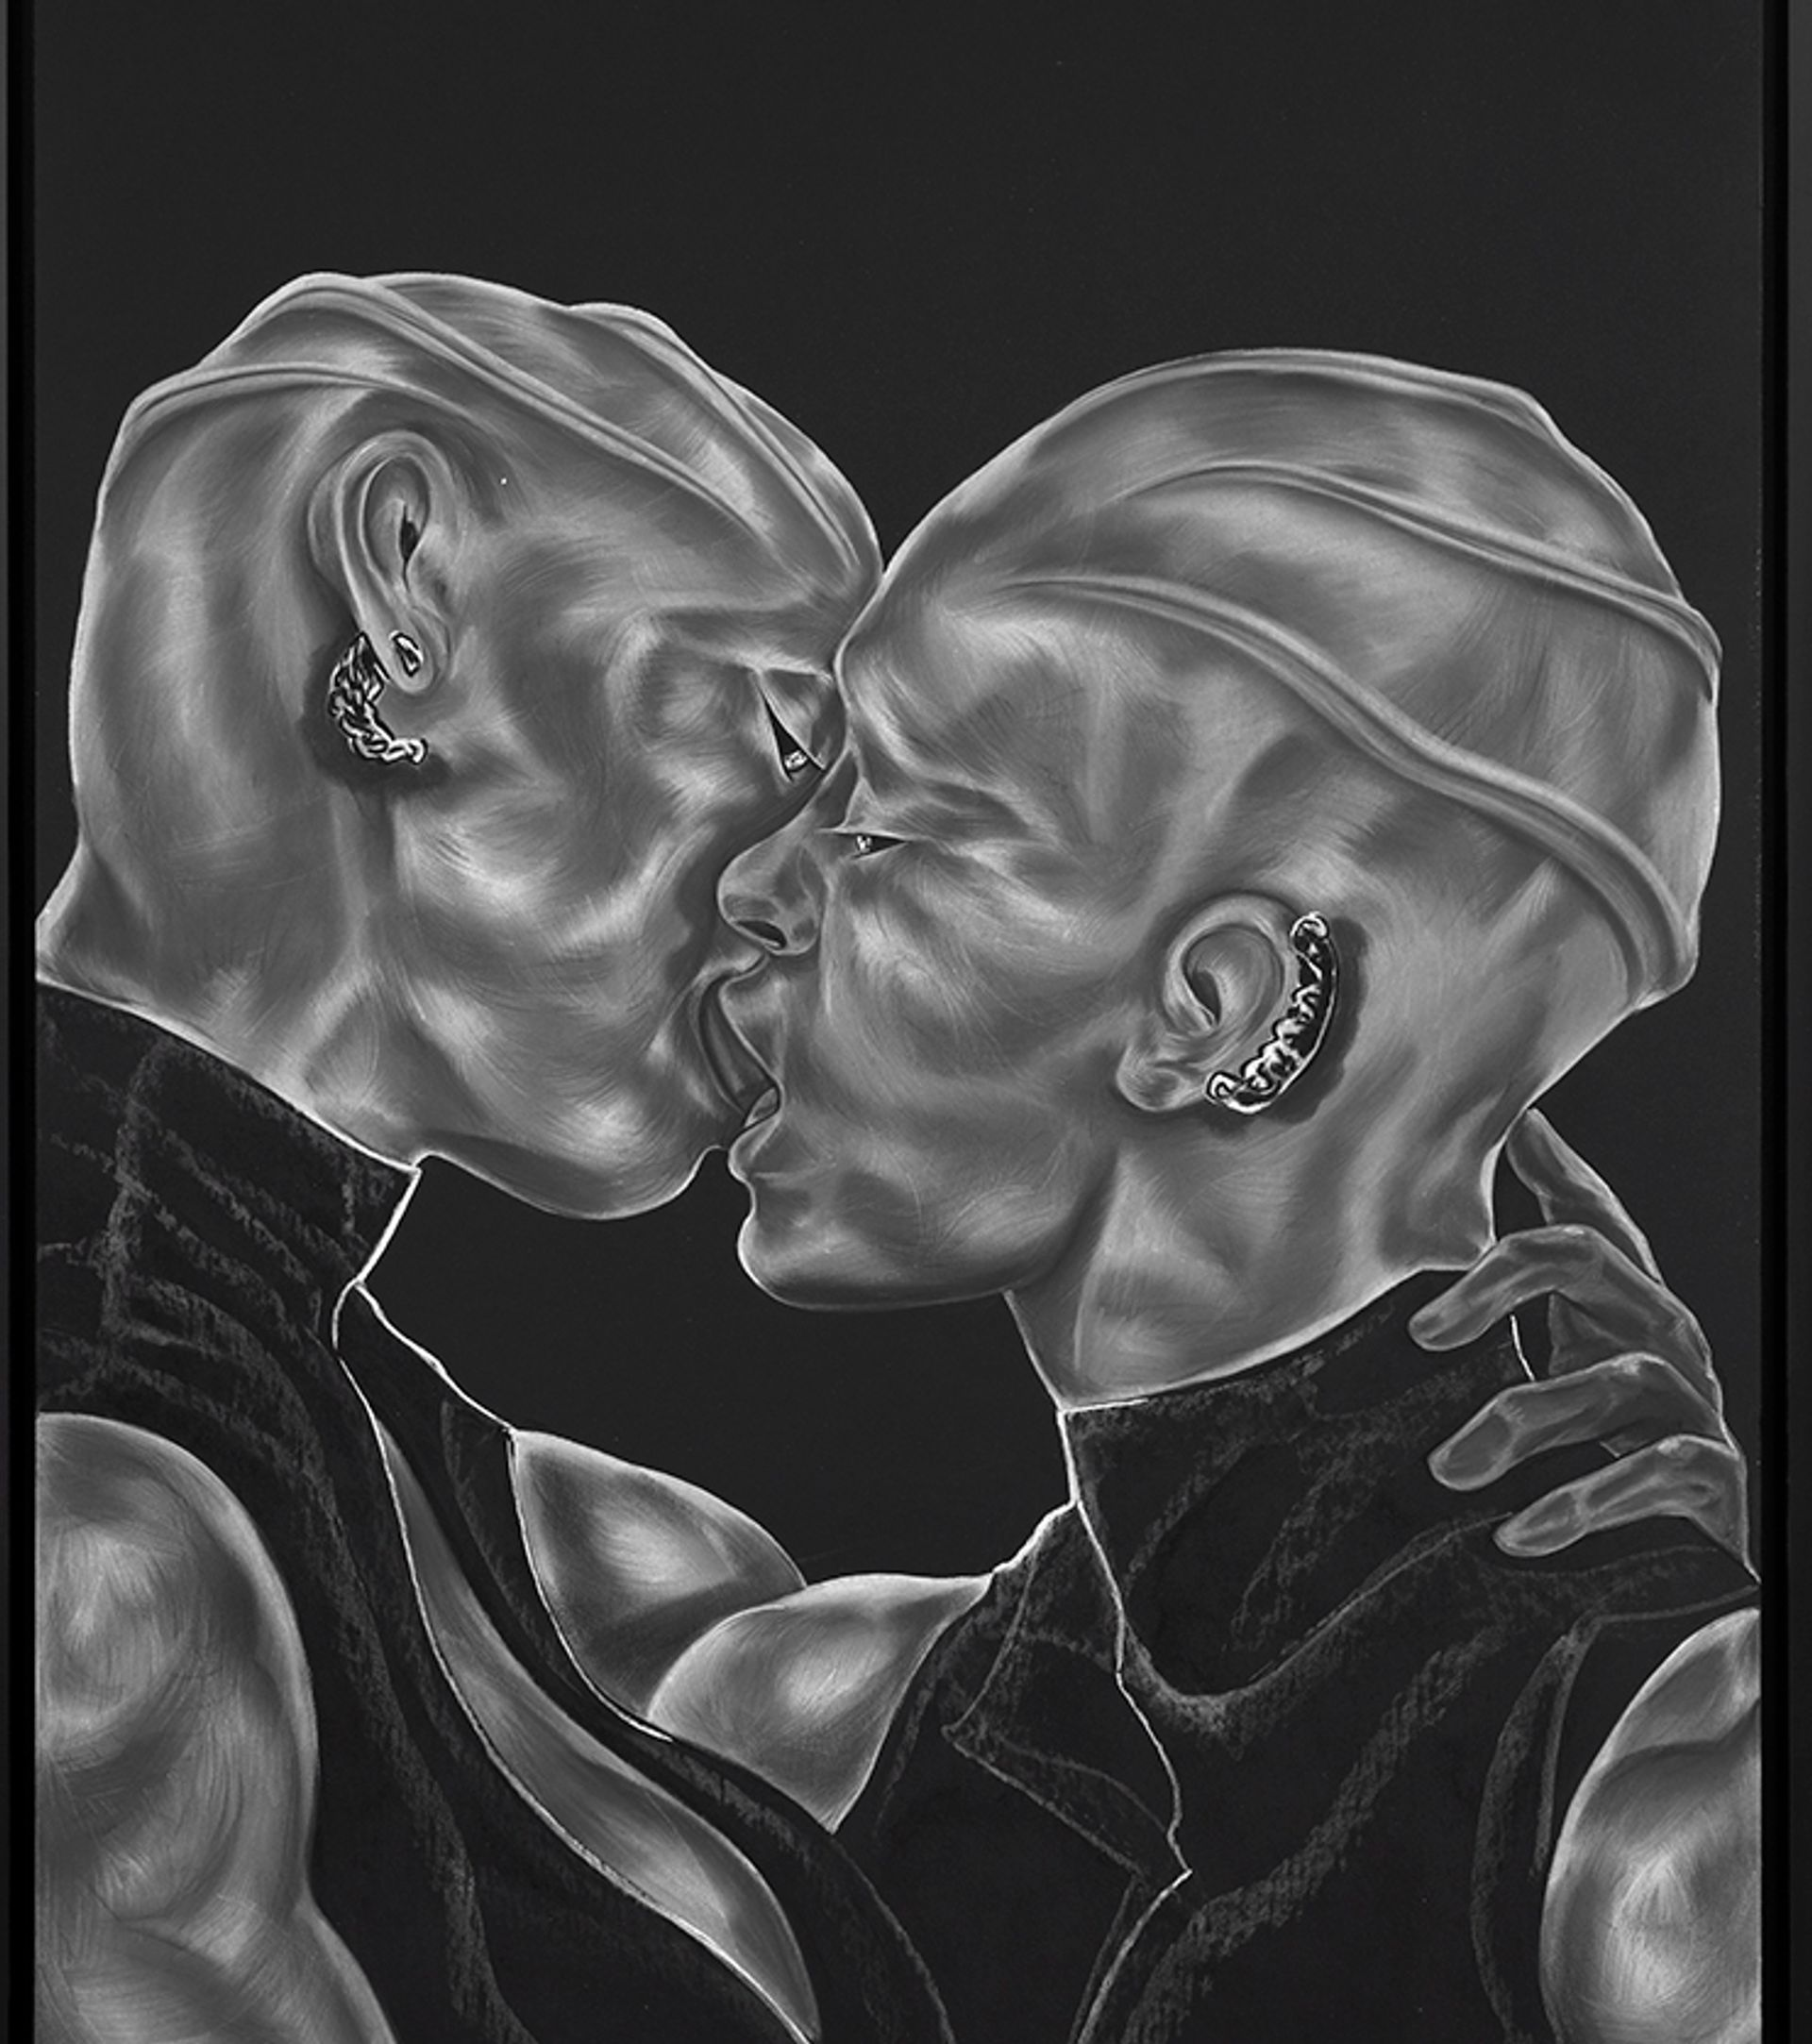 Toyin Ojih Odutola's A Parting Gift; Hers and Hers, Only from A Countervailing Theory (2019) Toyin Ojih Odutola. Courtesy of the artist and Jack Shainman Gallery, New York